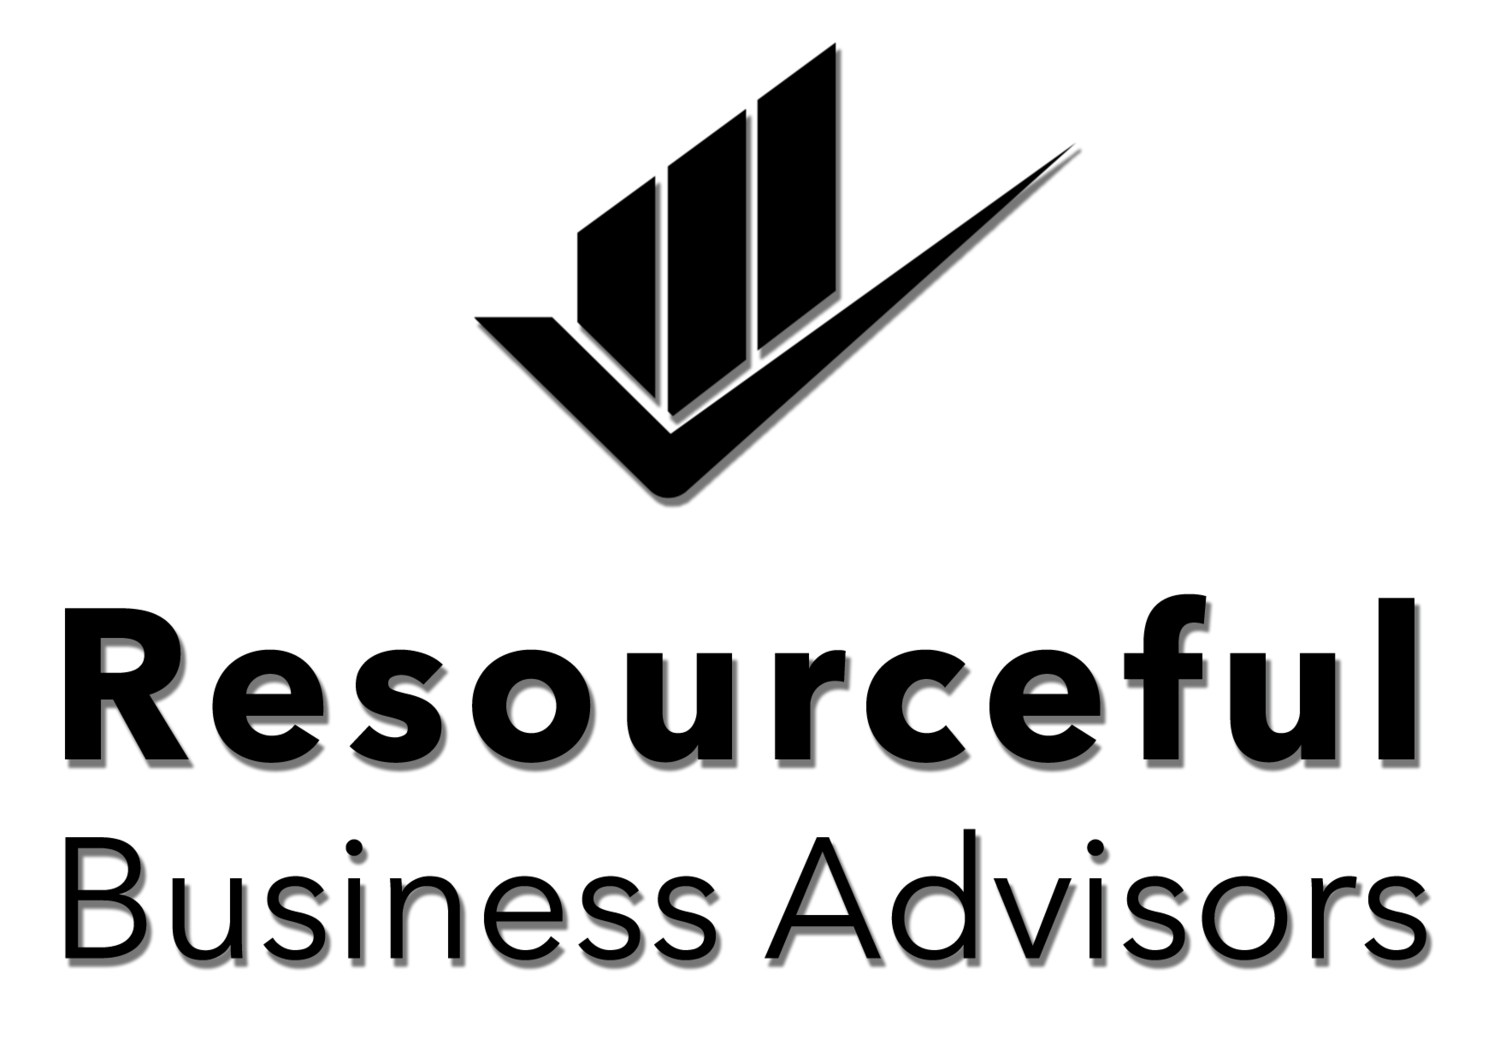 Resourceful Business Advisors LLC